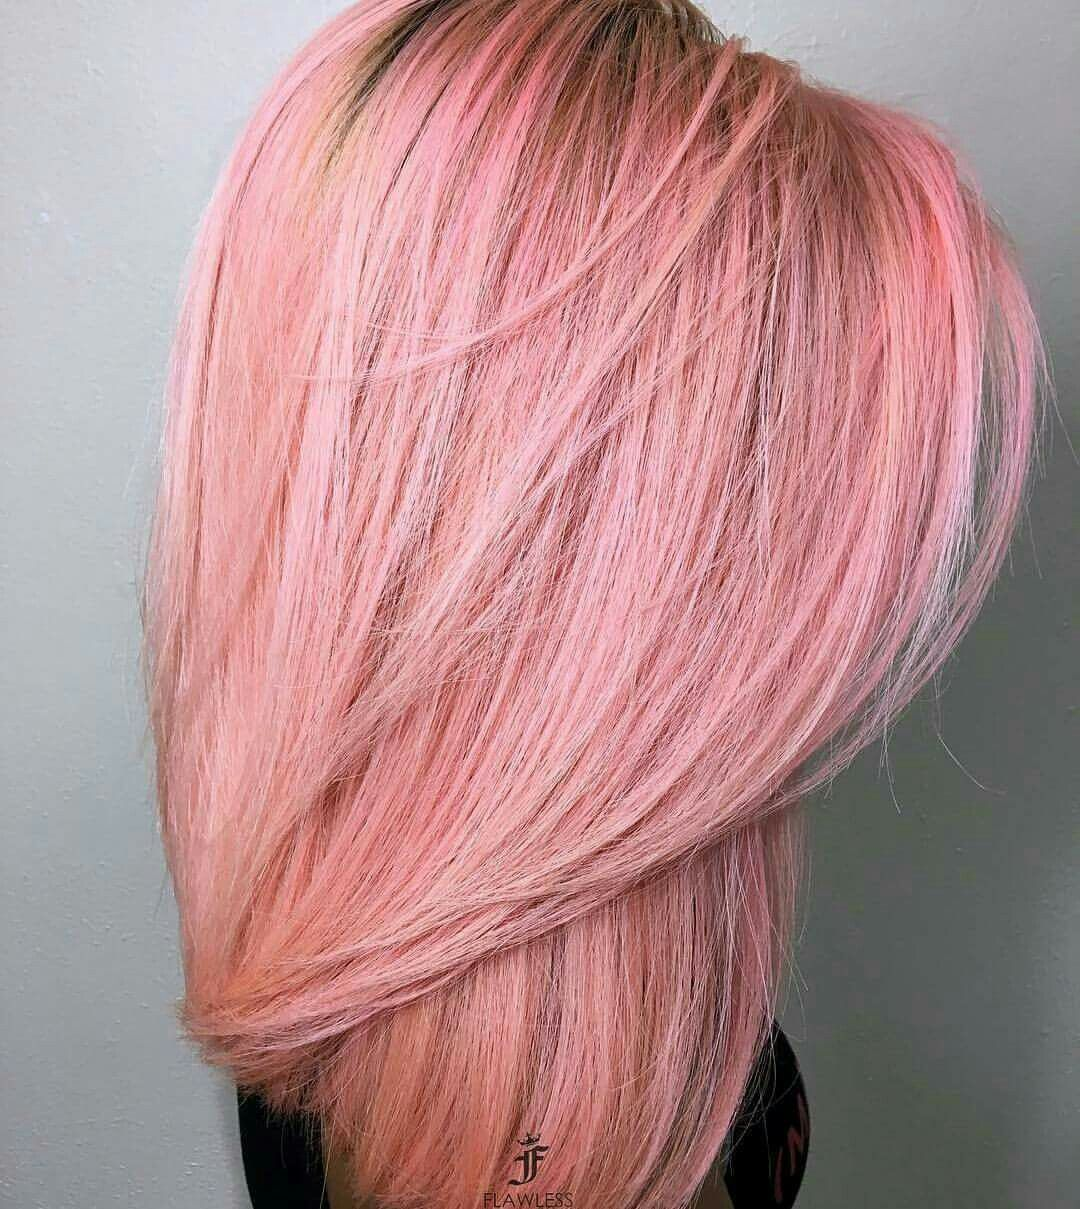 Pin By Boobamba On Colorful Hair Color Pinterest Hair Coloring